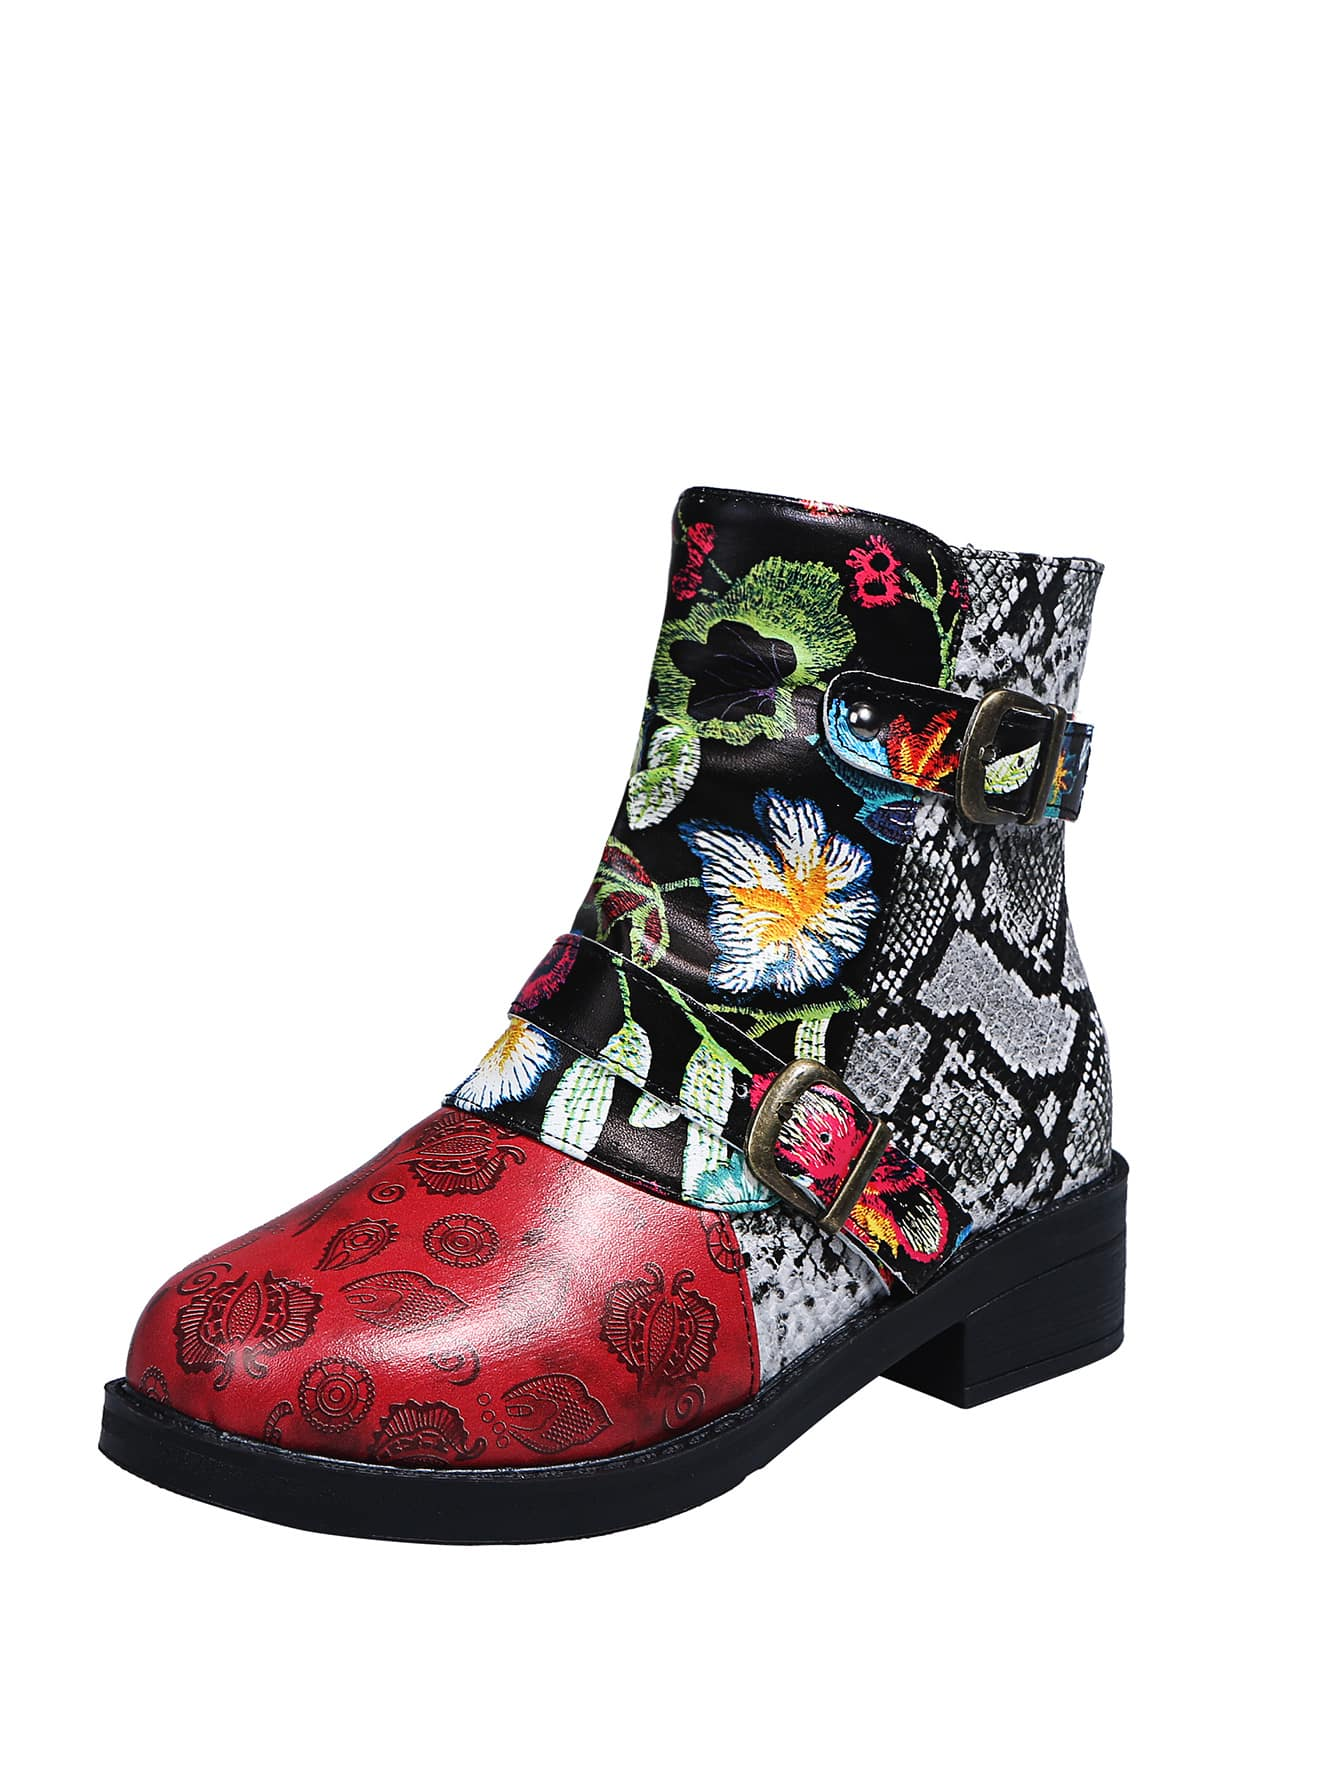 Snakeskin & Floral Ankle Boots